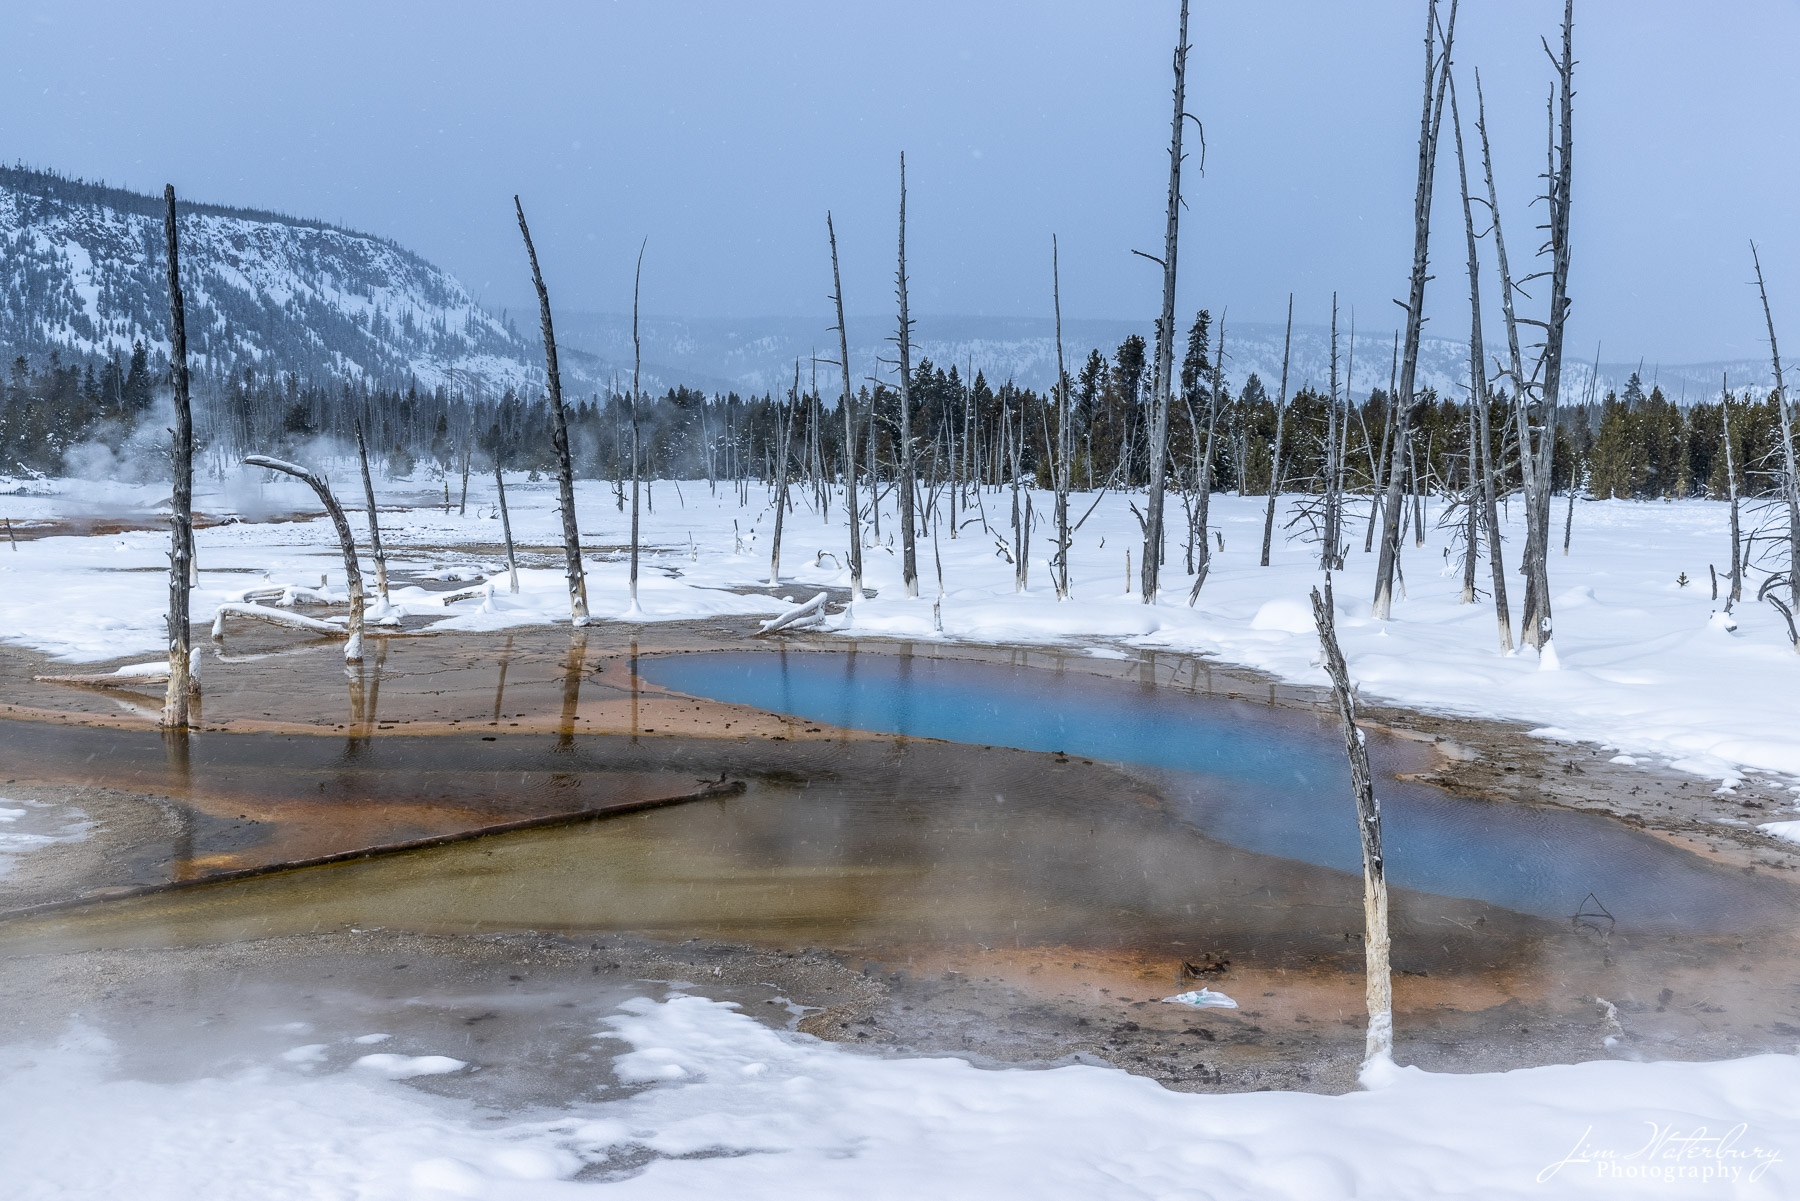 NATIONAL PARKS, Yellowstone